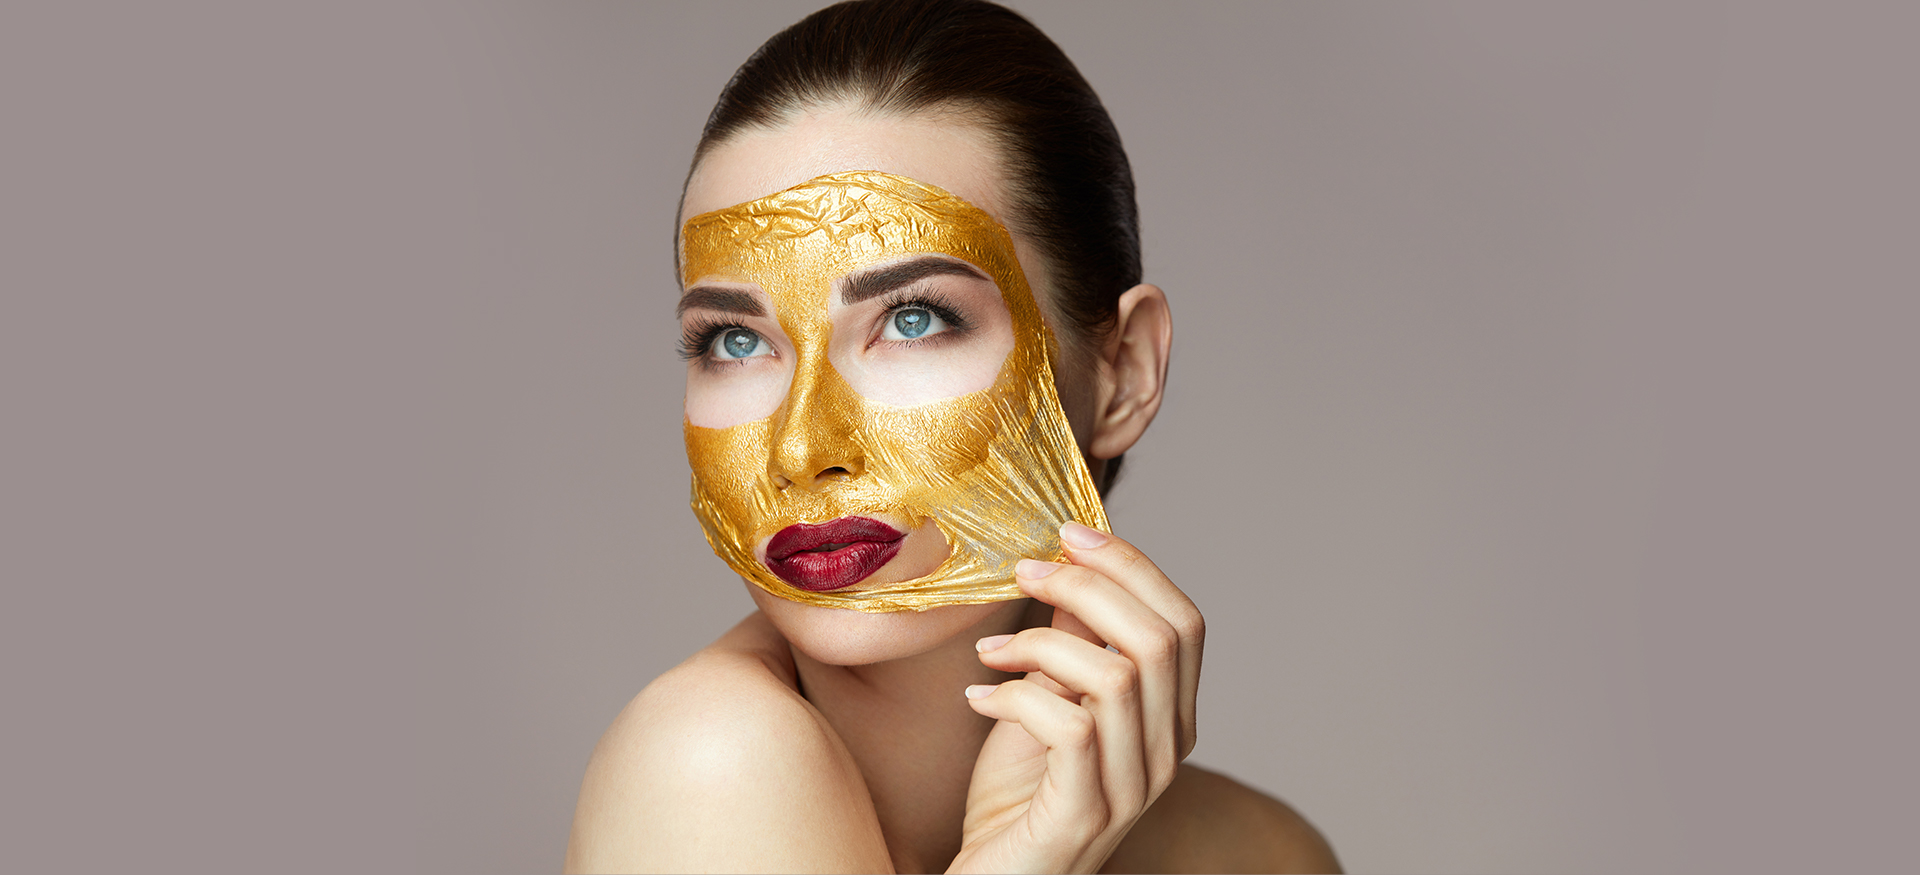 Everything You Need To Know About The Current 'Gram Obsession - Gold Face Masks'